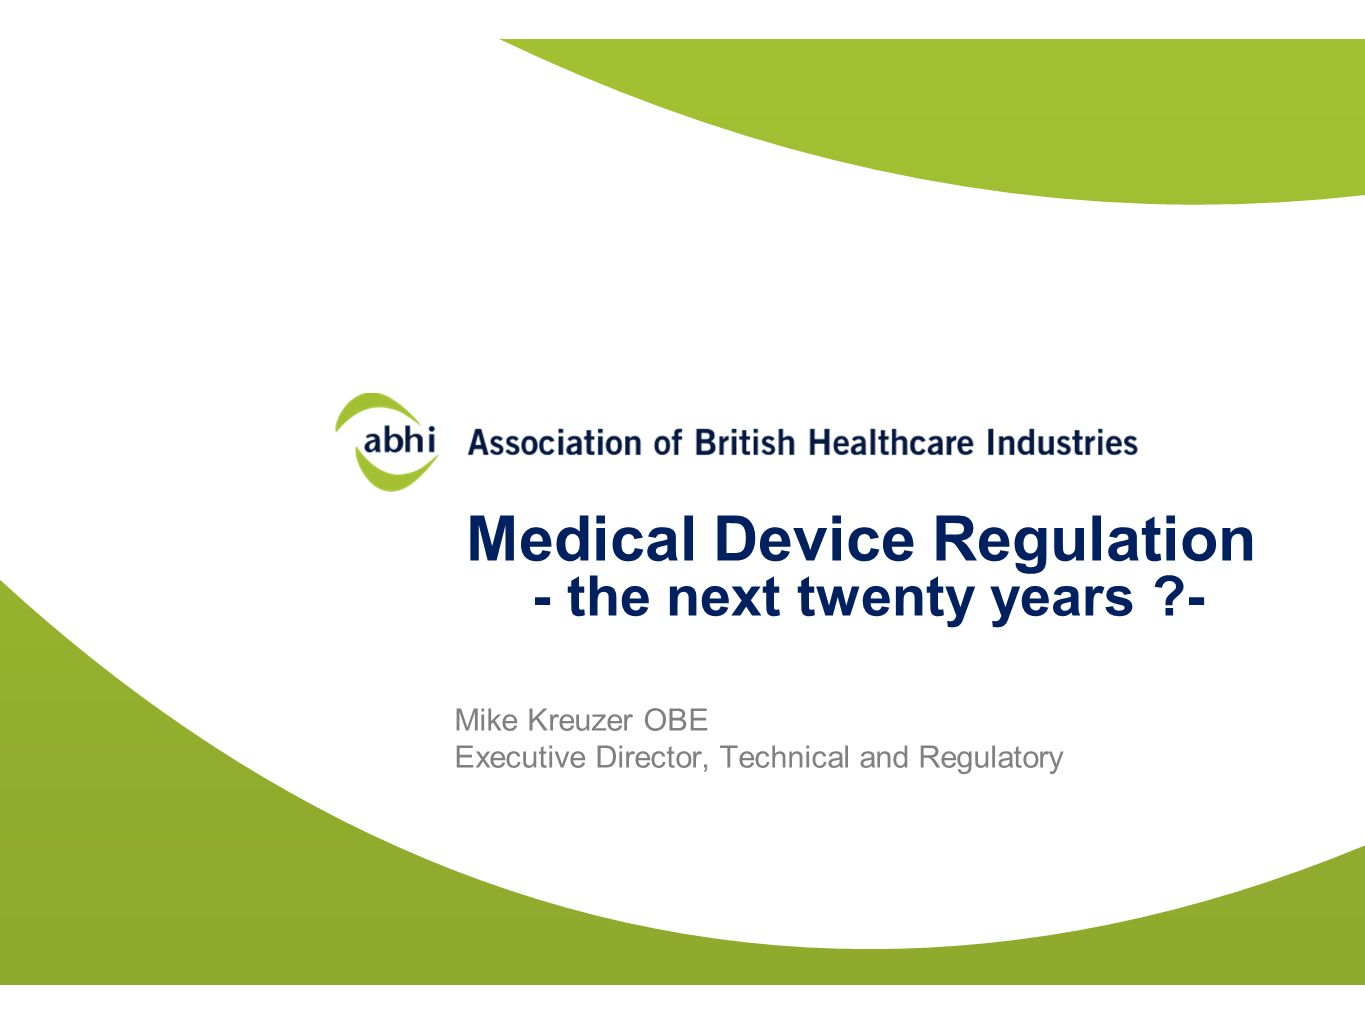 Medical Device Regulation - the next twenty years -